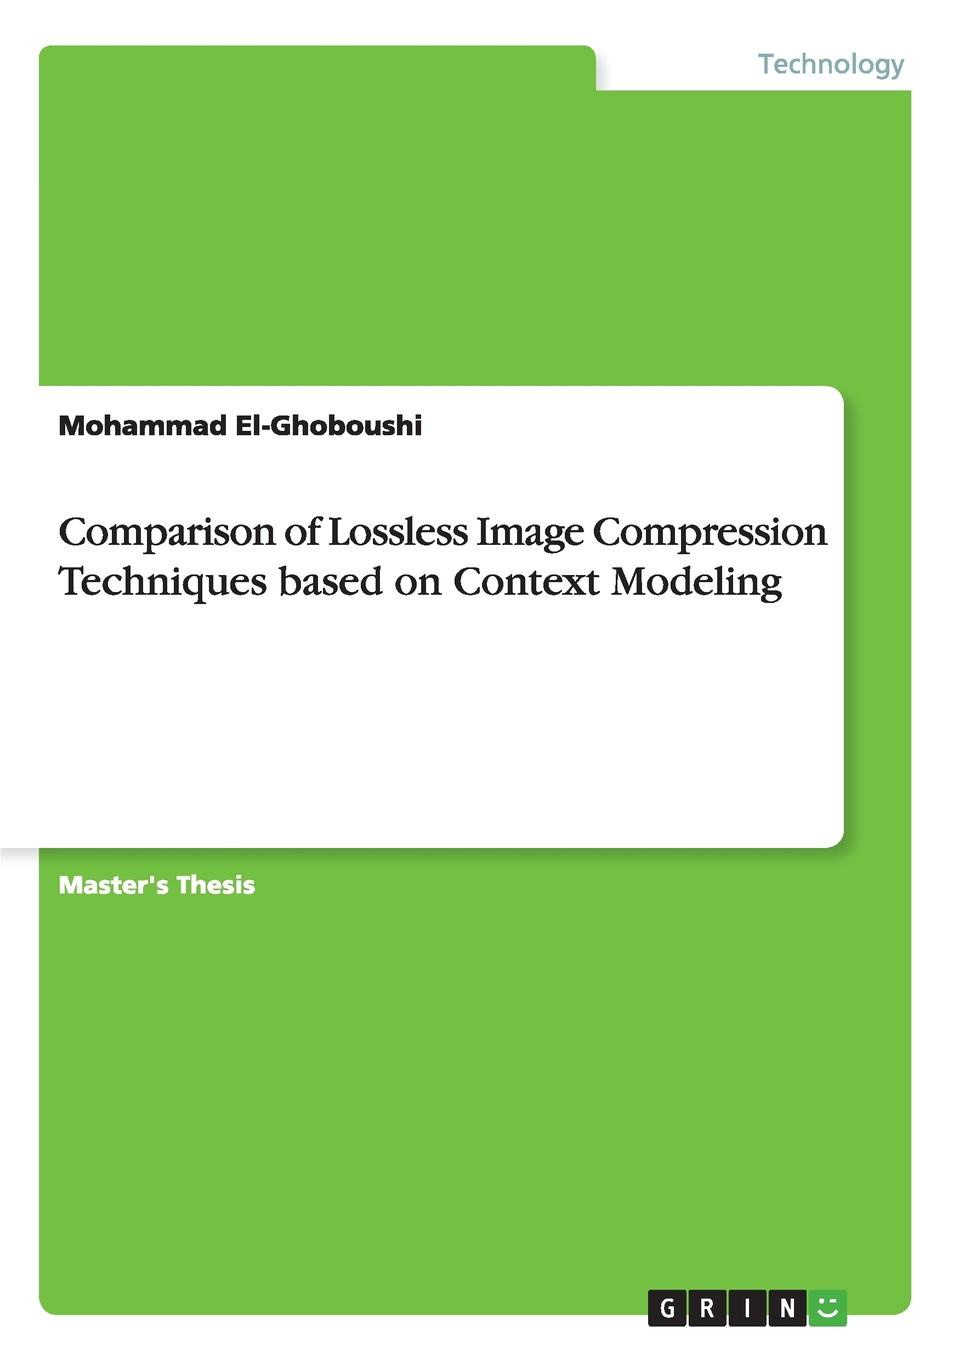 Mohammad El-Ghoboushi Comparison of Lossless Image Compression Techniques based on Context Modeling still image compression using discreet wavelet transform